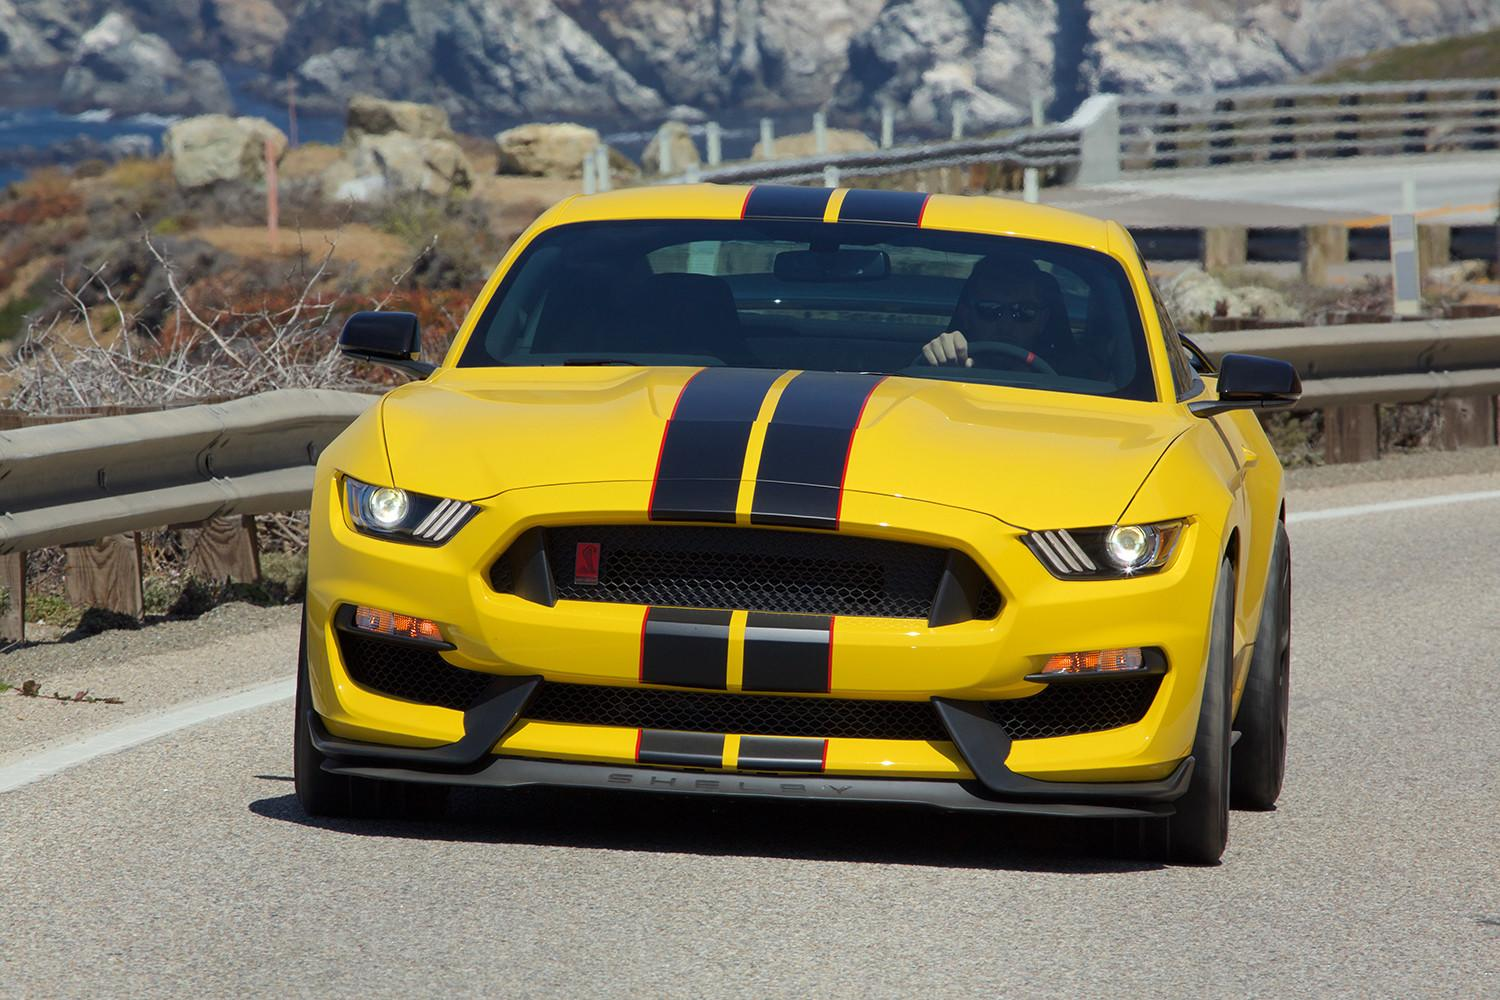 Fords 2018 mustang could get a trick suspension lose an engine option